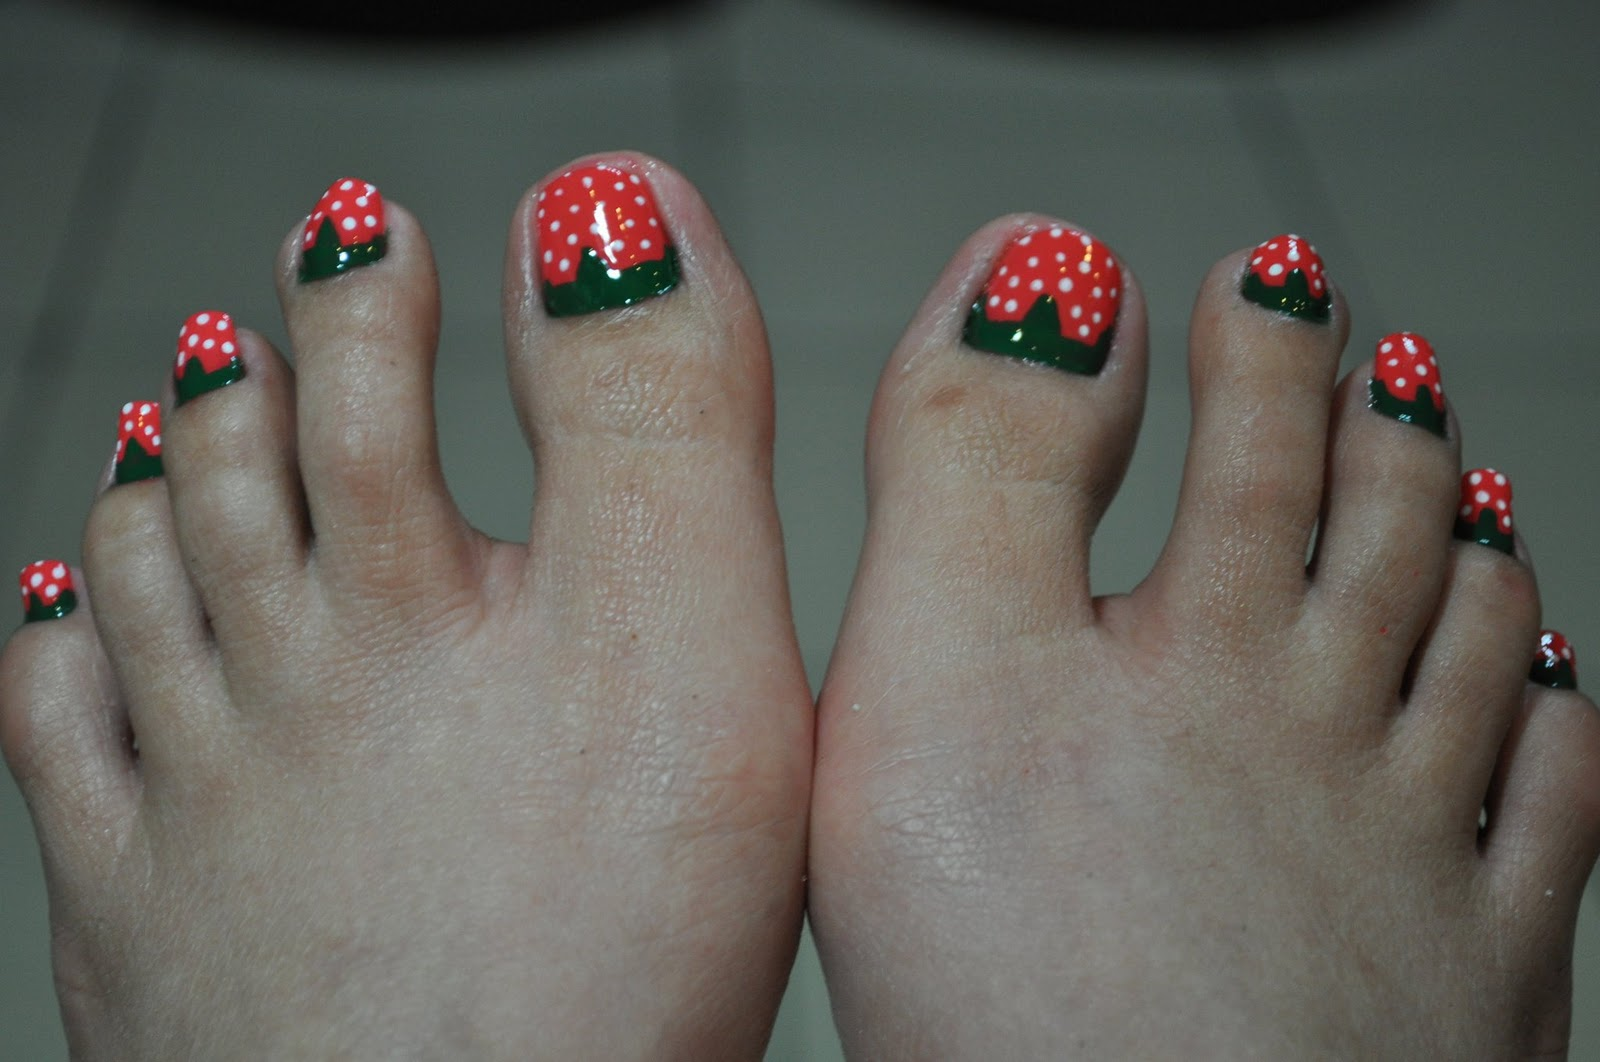 Elite Nails Hand Foot And Body Spa March 2011